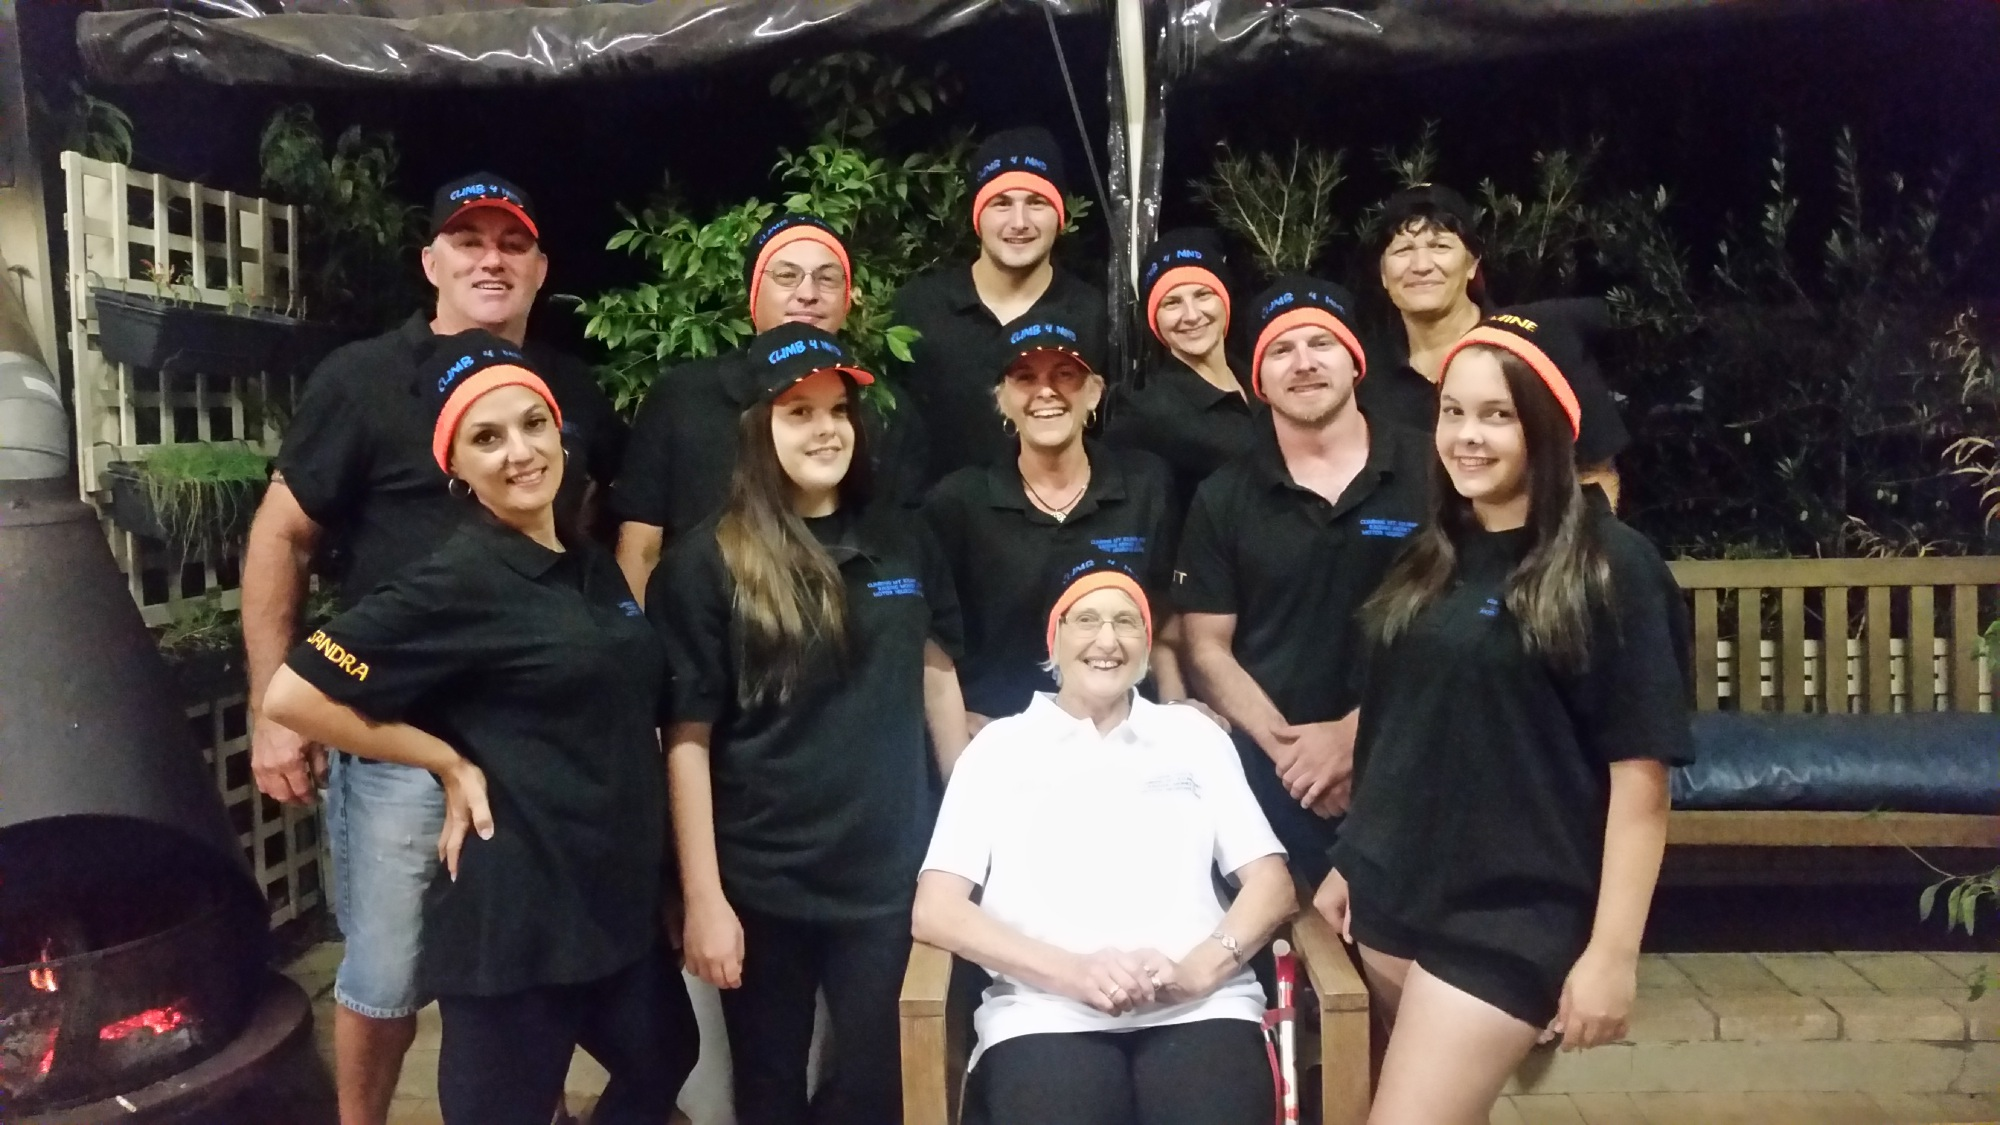 The team will climb Mt Kilimanjaro to raise money and awareness for Motor Neurone Disease. Picture: Supplied